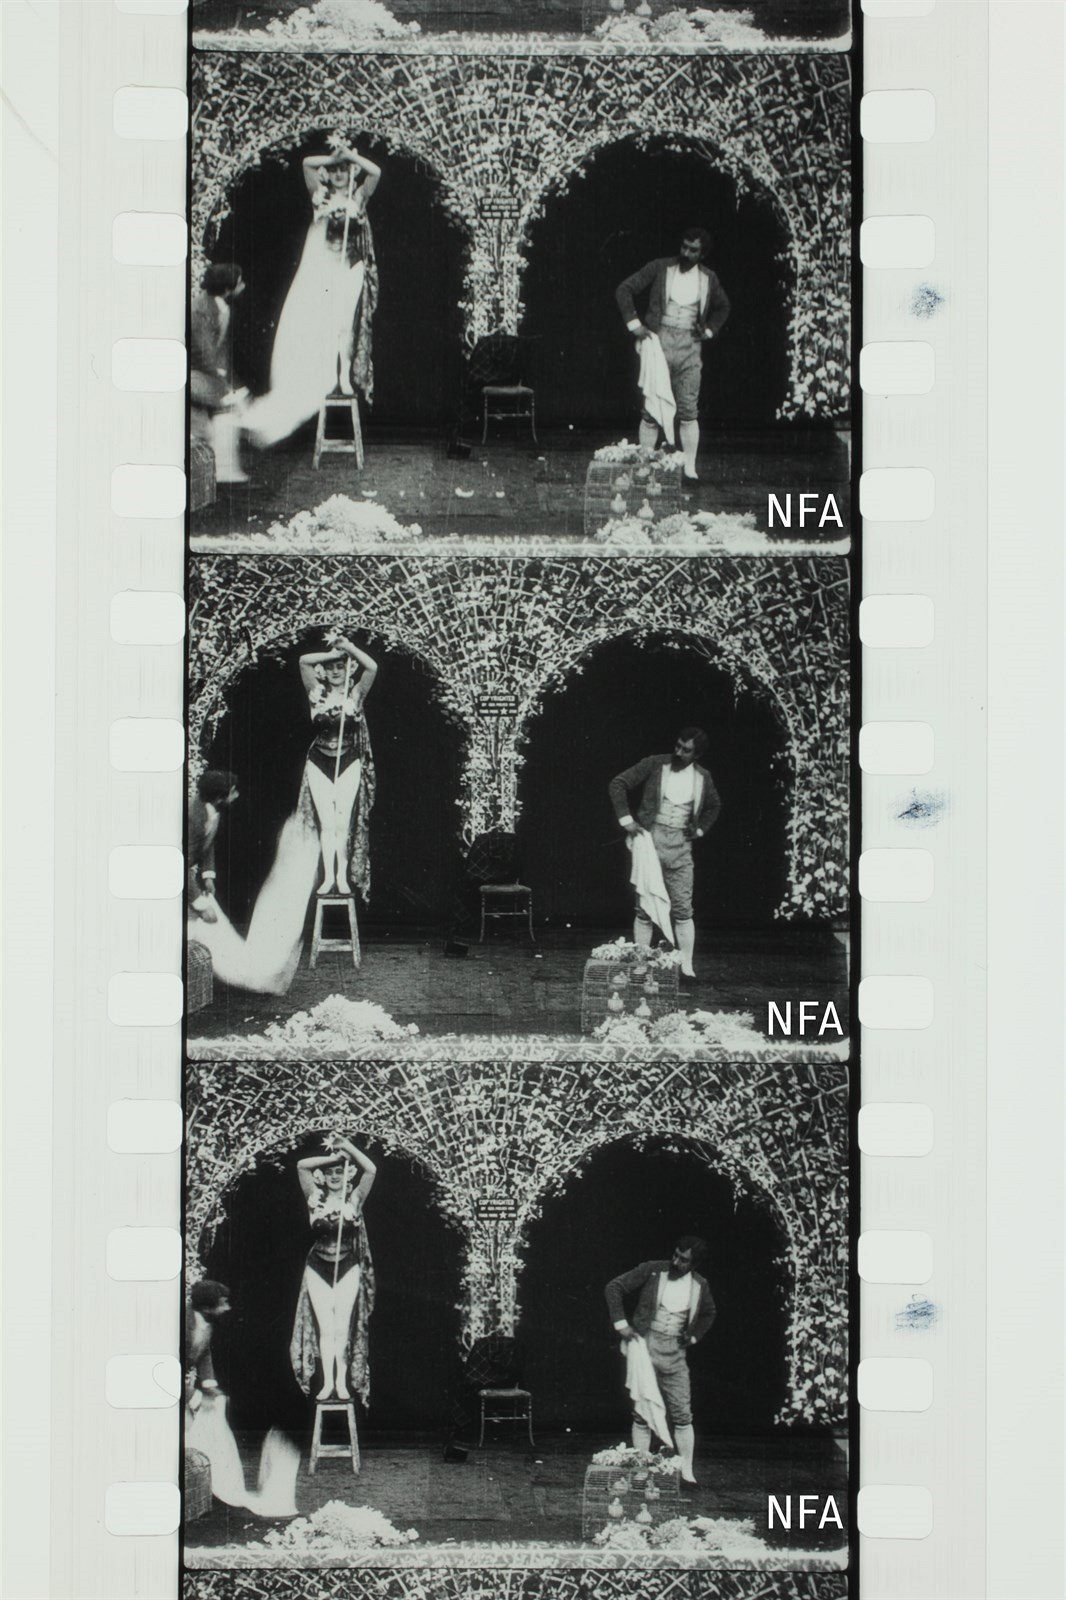 Image: Czech National Film Archive